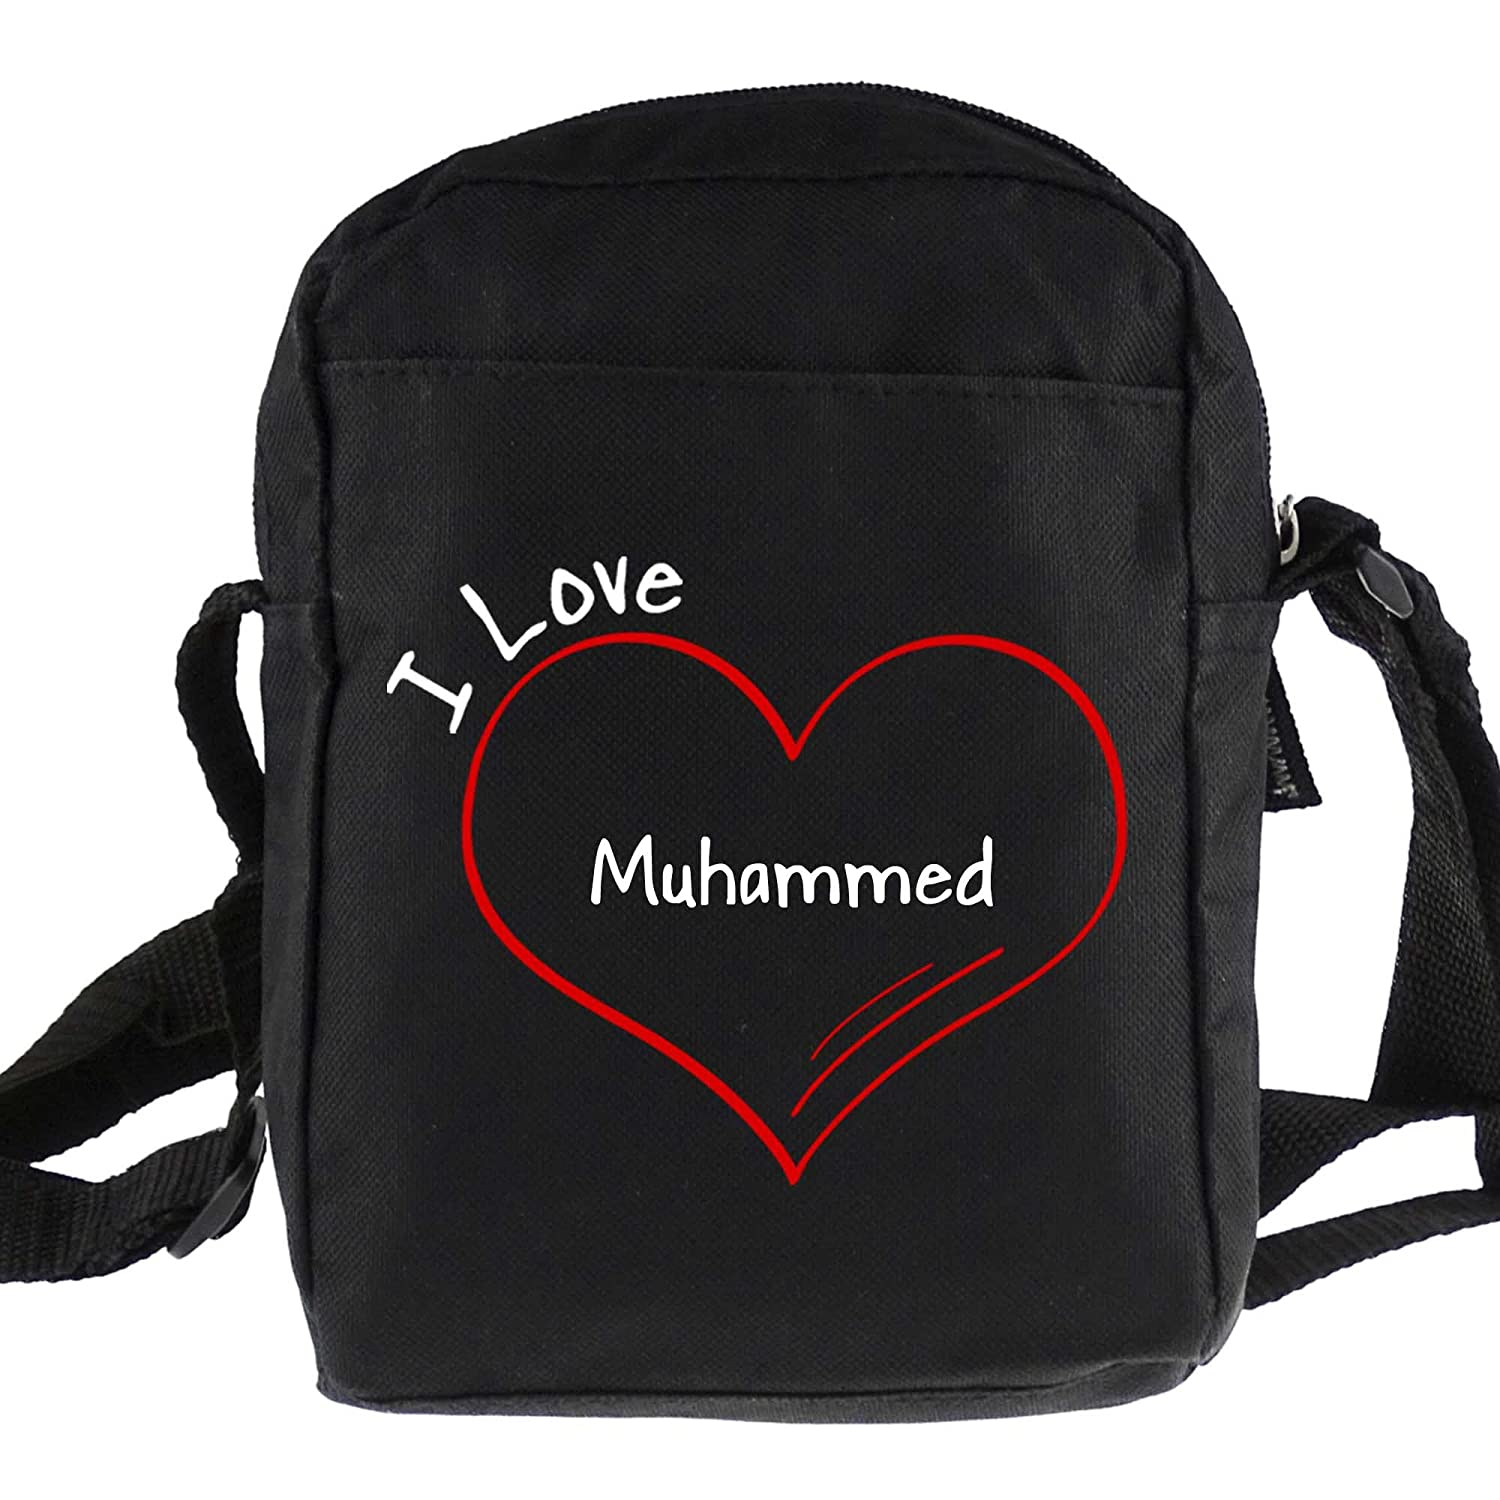 Modern I Love Muhammed Black Shoulder Bag